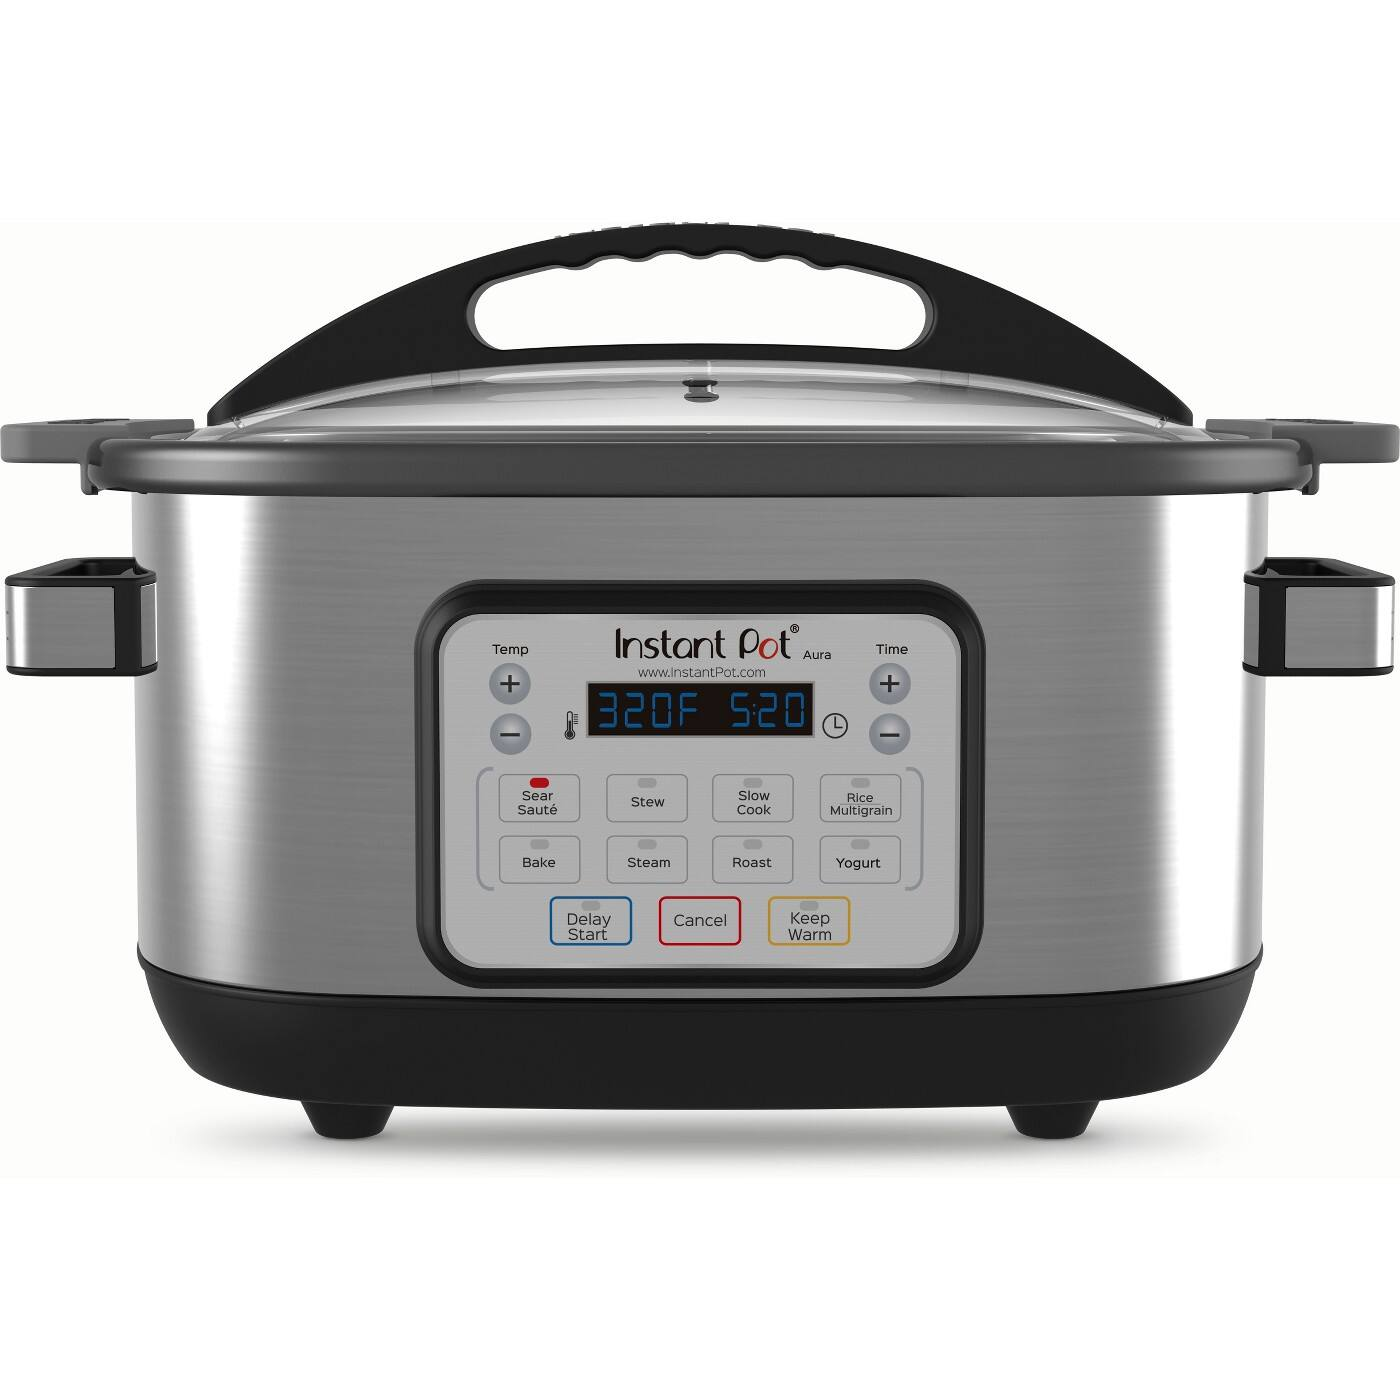 YMMV B&M Instant Pot 6qt Aura Multi Cooker for $48.96 after Cartwheel 30% off@ Target